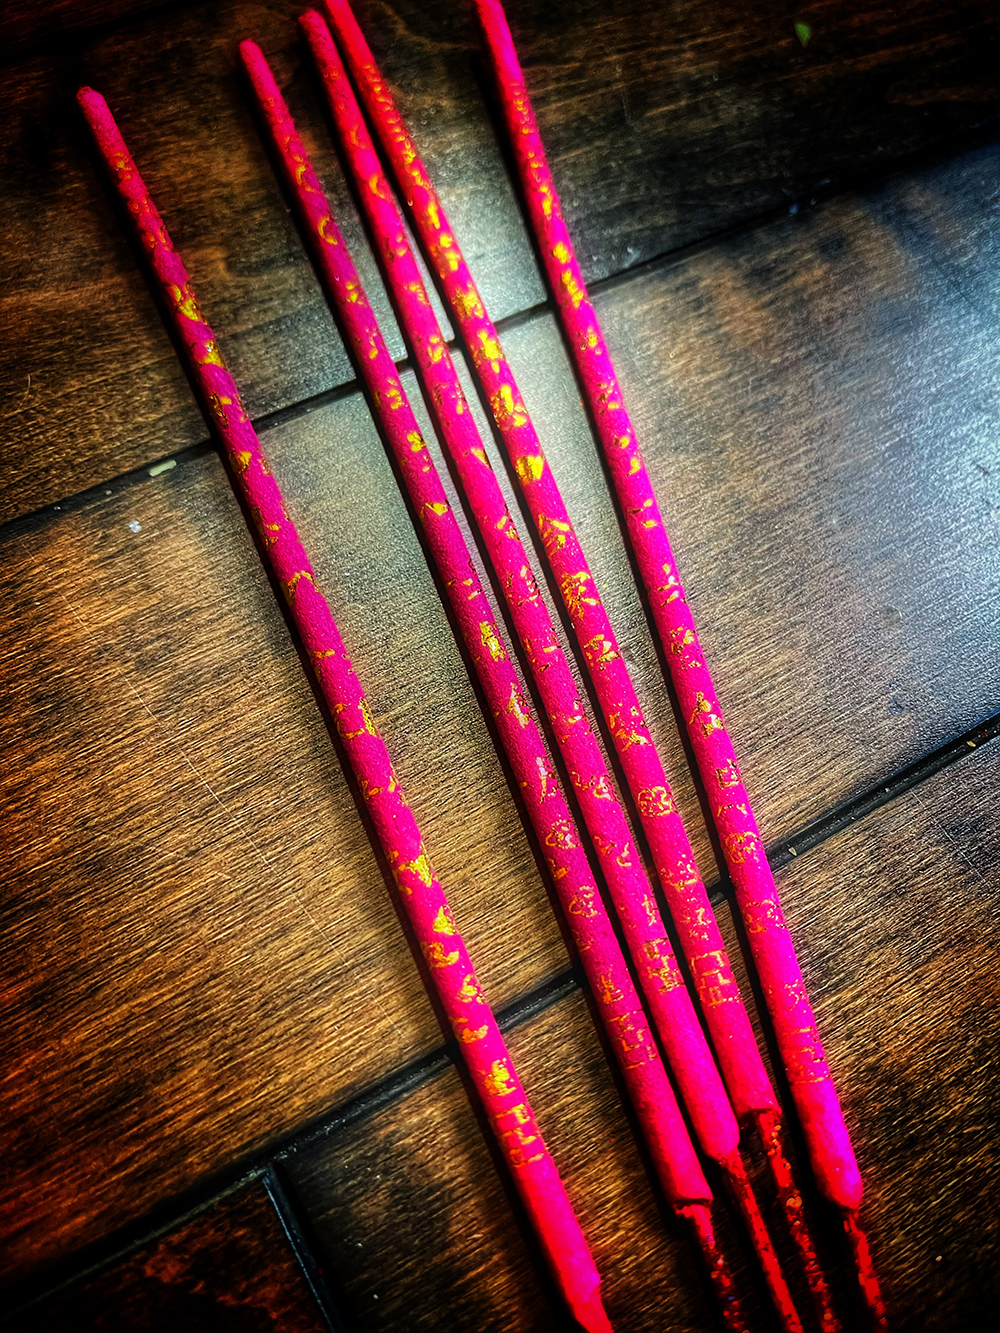 Joss Golden Pink Incense Sticks